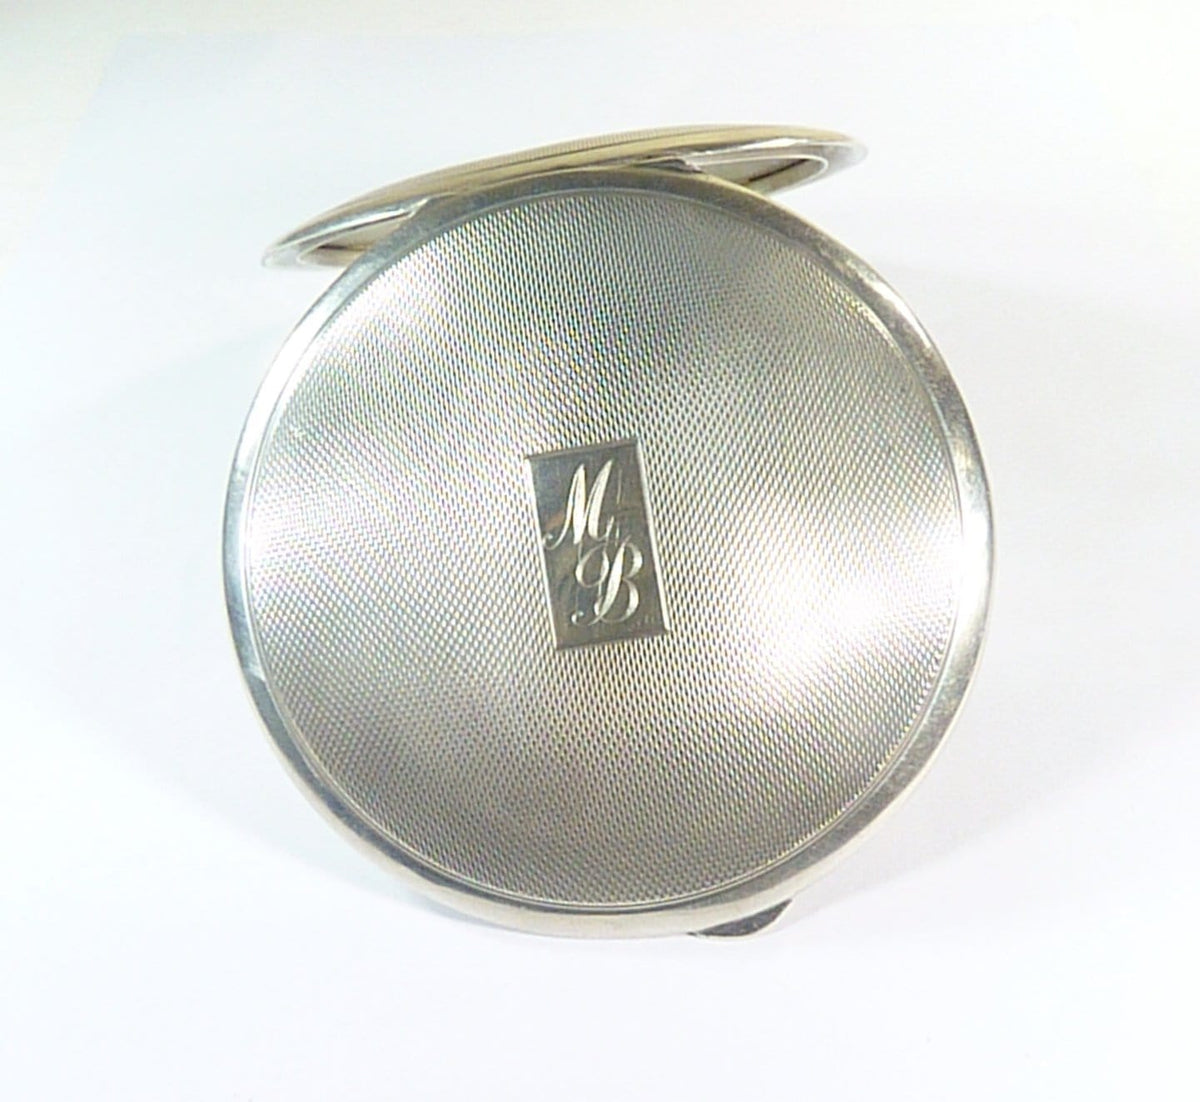 initials M B  sterling silver loose powder compact